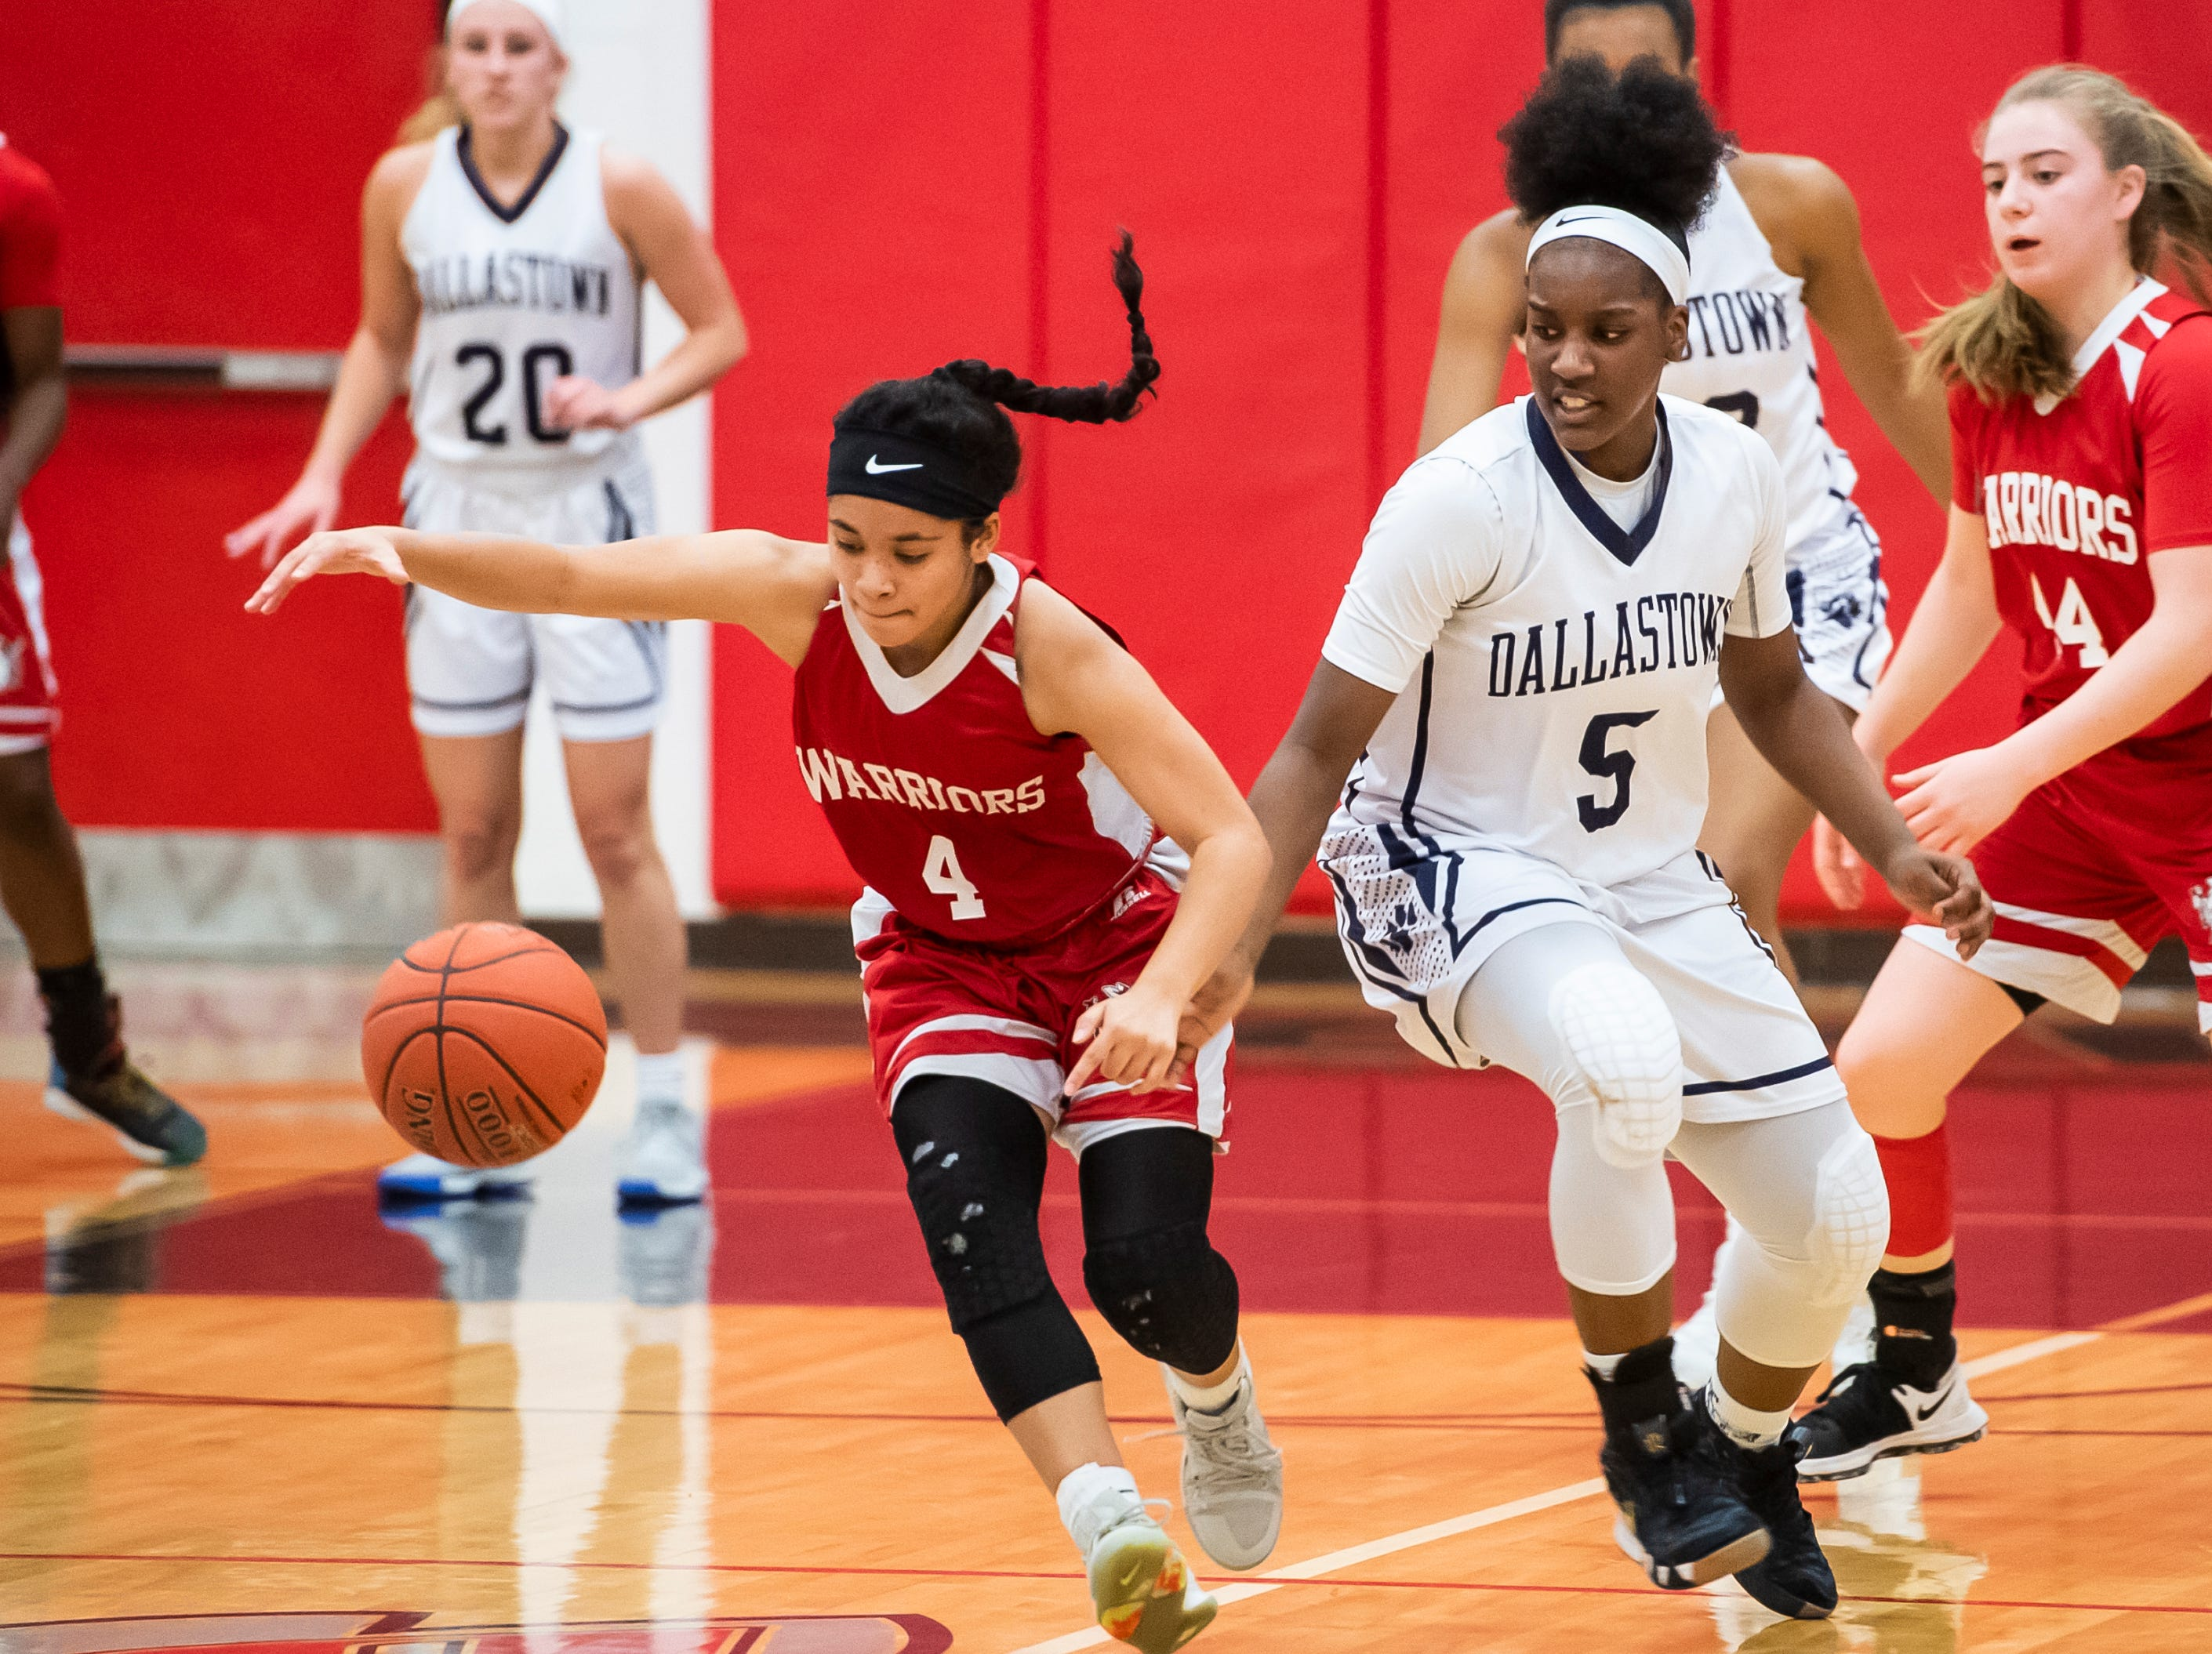 Susquehannock's Jayla Galbreath (4) and Dallastown's D'Shantae Edwards eye a loose ball during a YAIAA quarterfinal game at Dover High School Friday, February 8, 2019. The Wildcats won 42-29. Edwards, a freshman, led all scorers with 12 points.